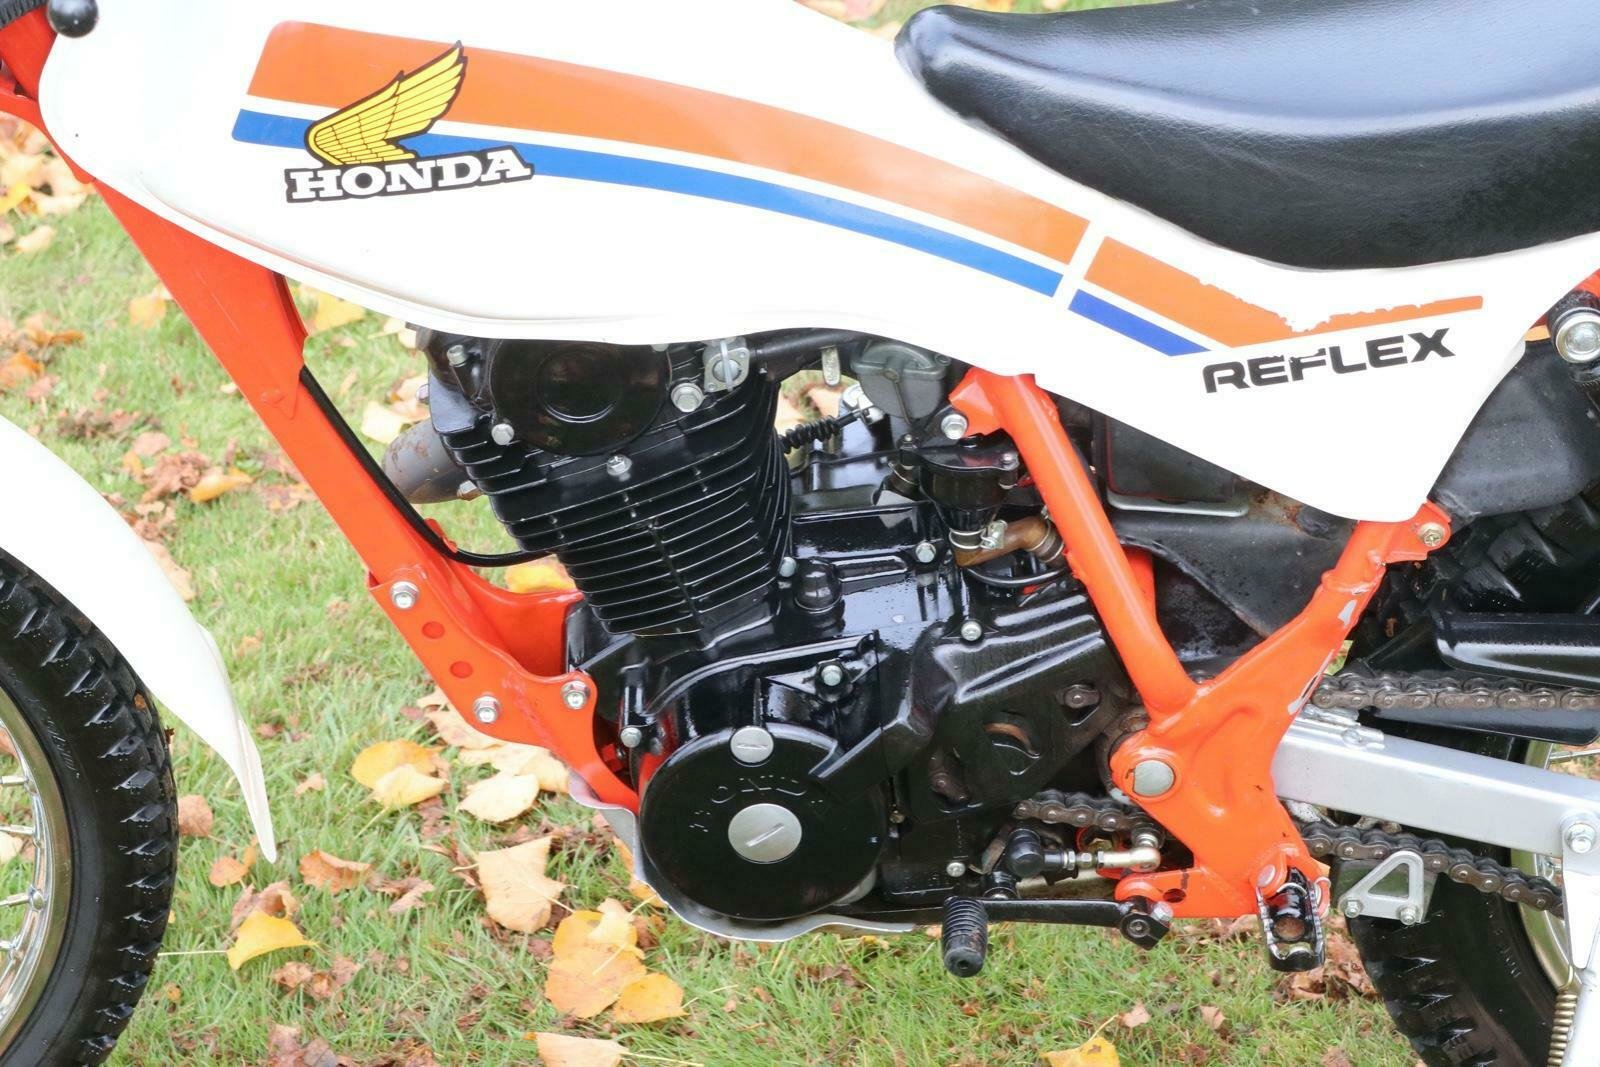 1986 Honda TLR 200 TL R 200 Reflex with just 613 miles from new!! For Sale (picture 2 of 5)